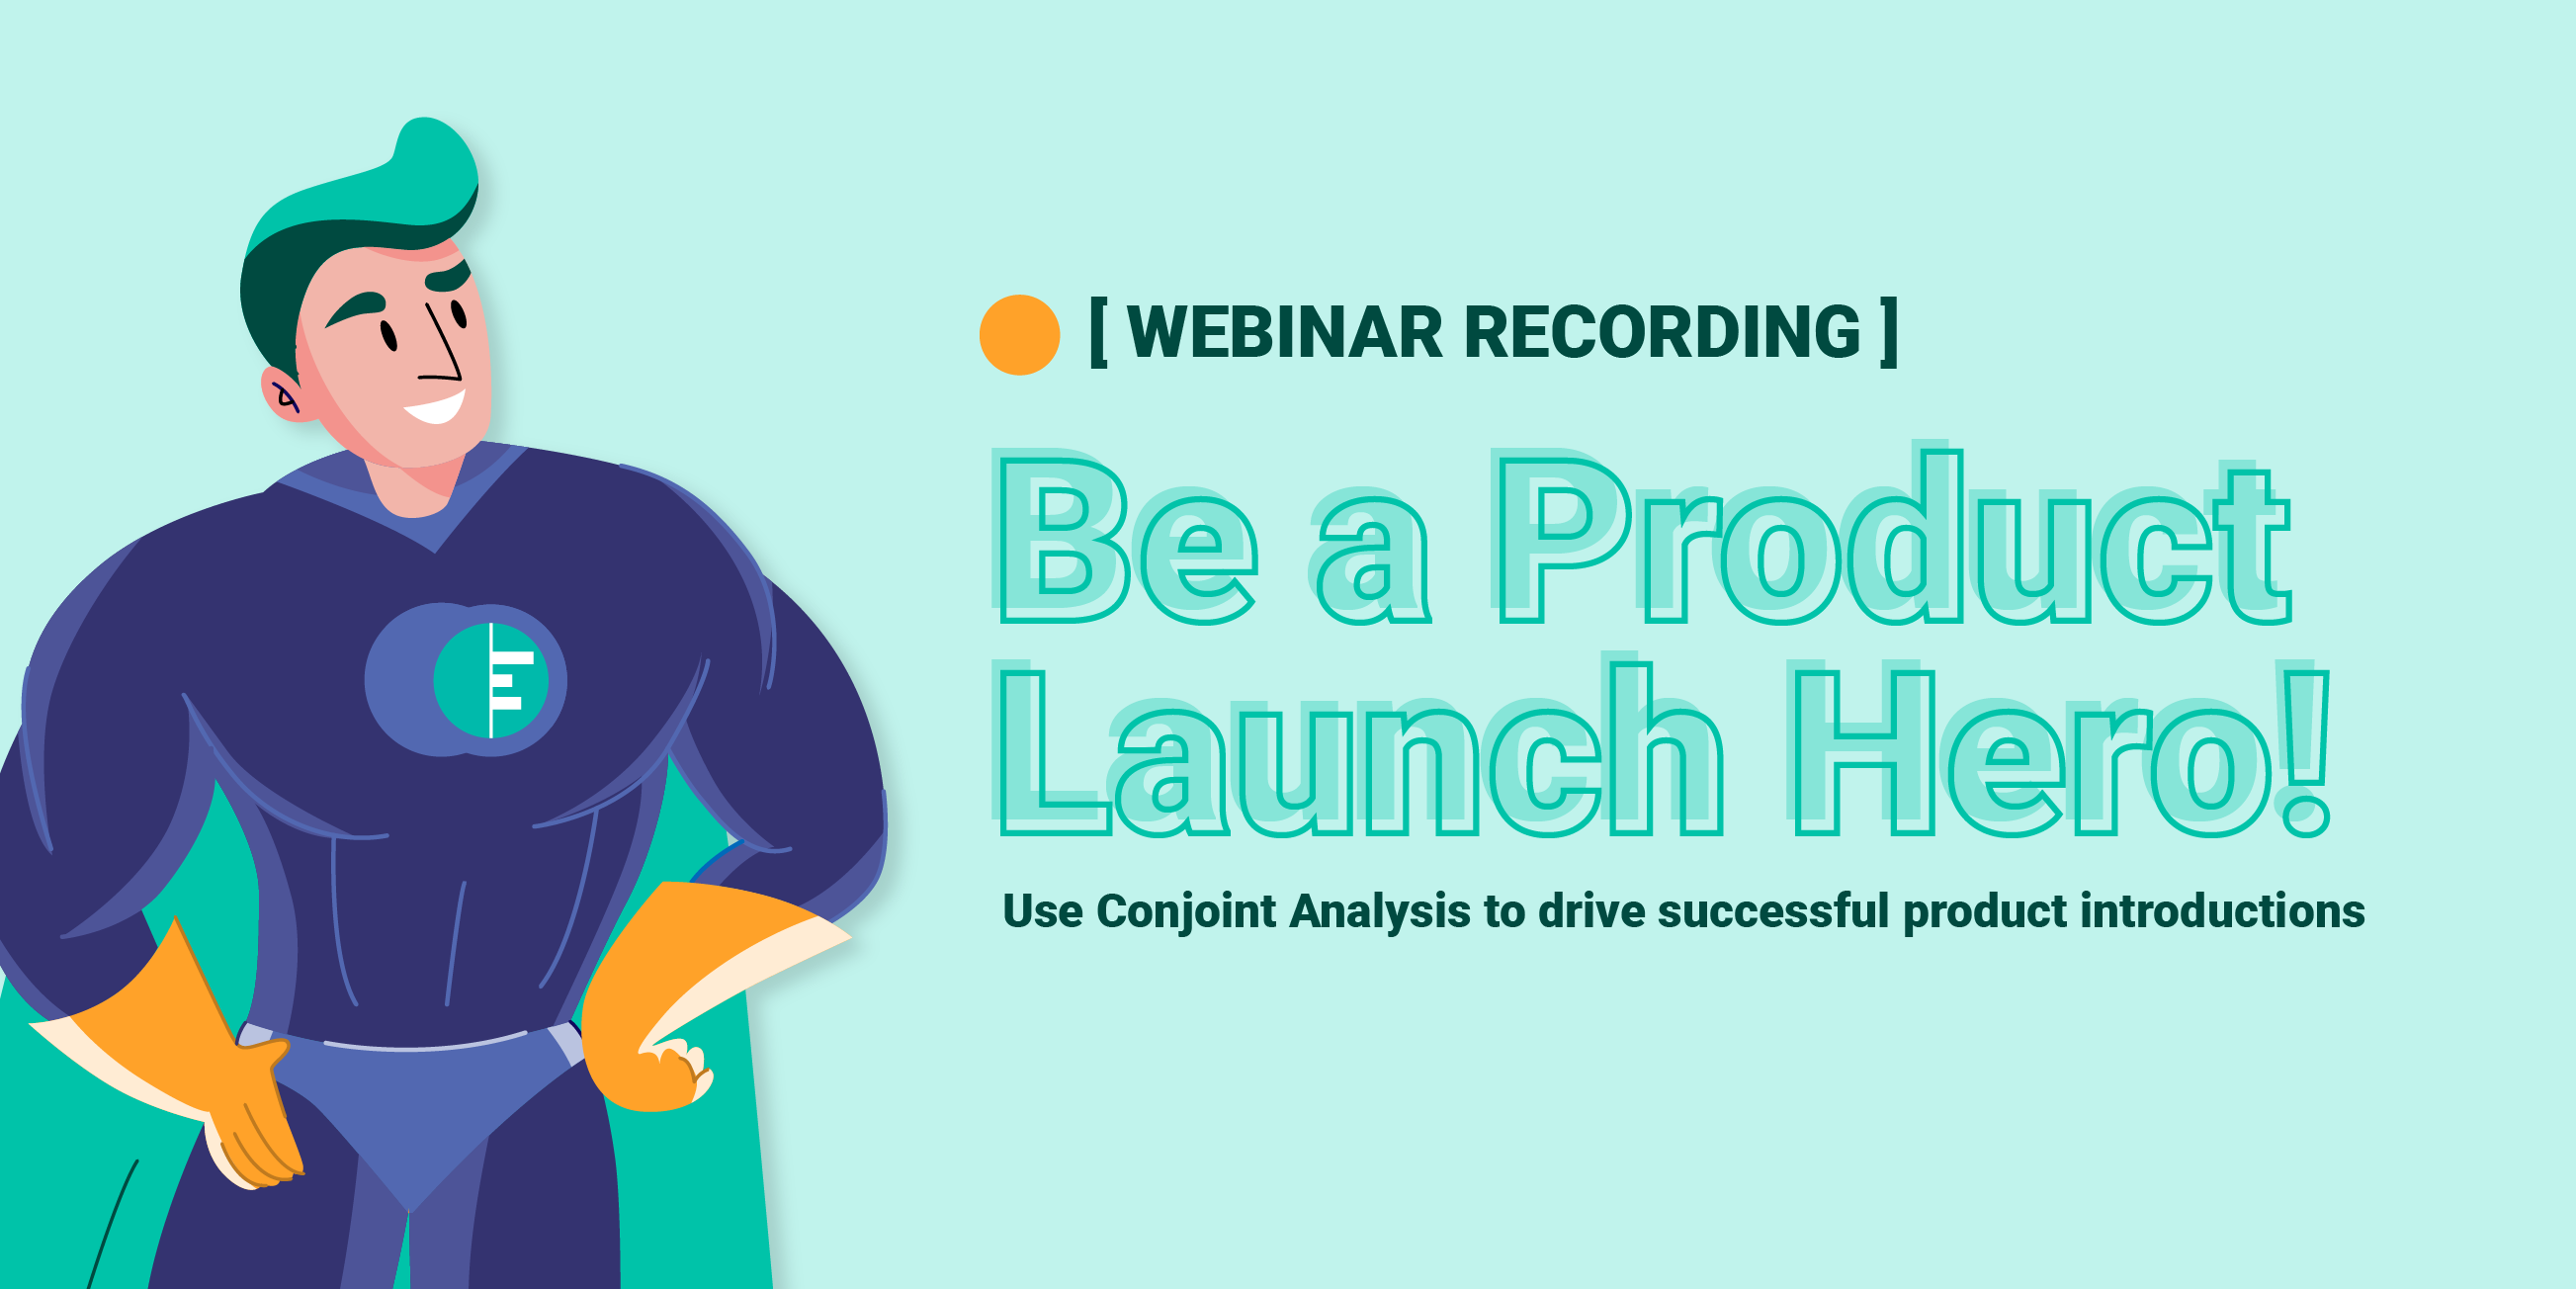 webinar-de-risking-new-product-introductions-with-conjoint-analysis